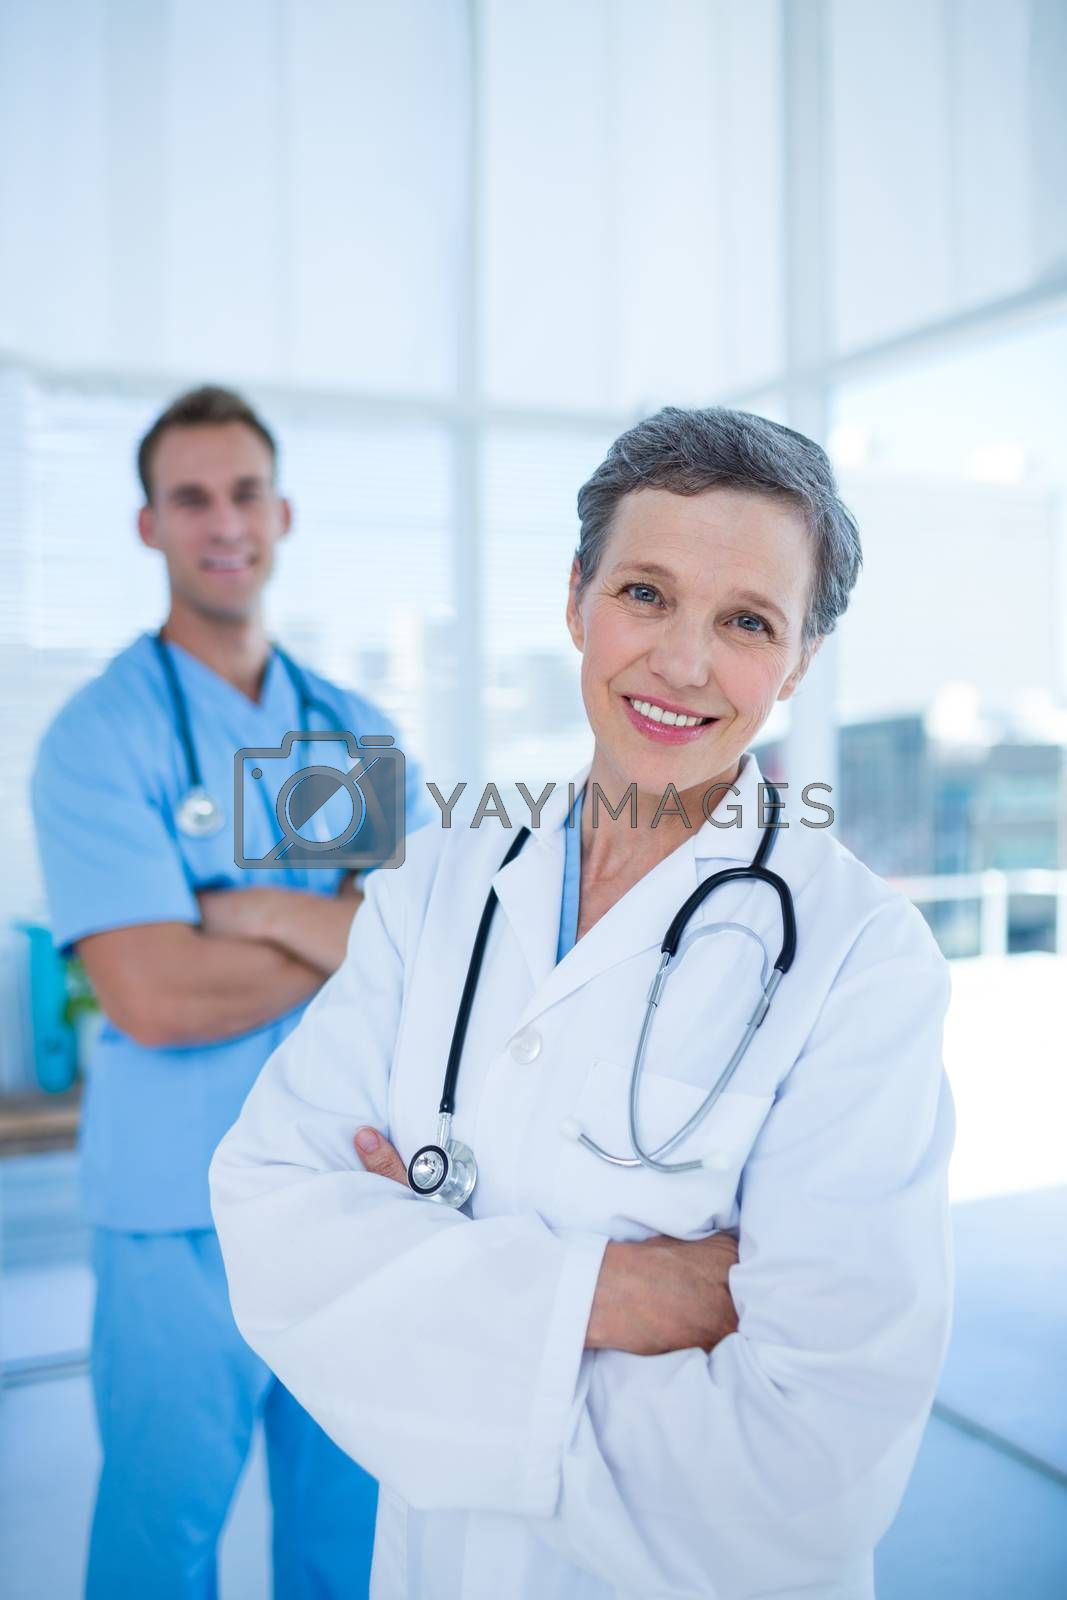 Royalty free image of Smiling colleagues doctors looking at the camera by Wavebreakmedia